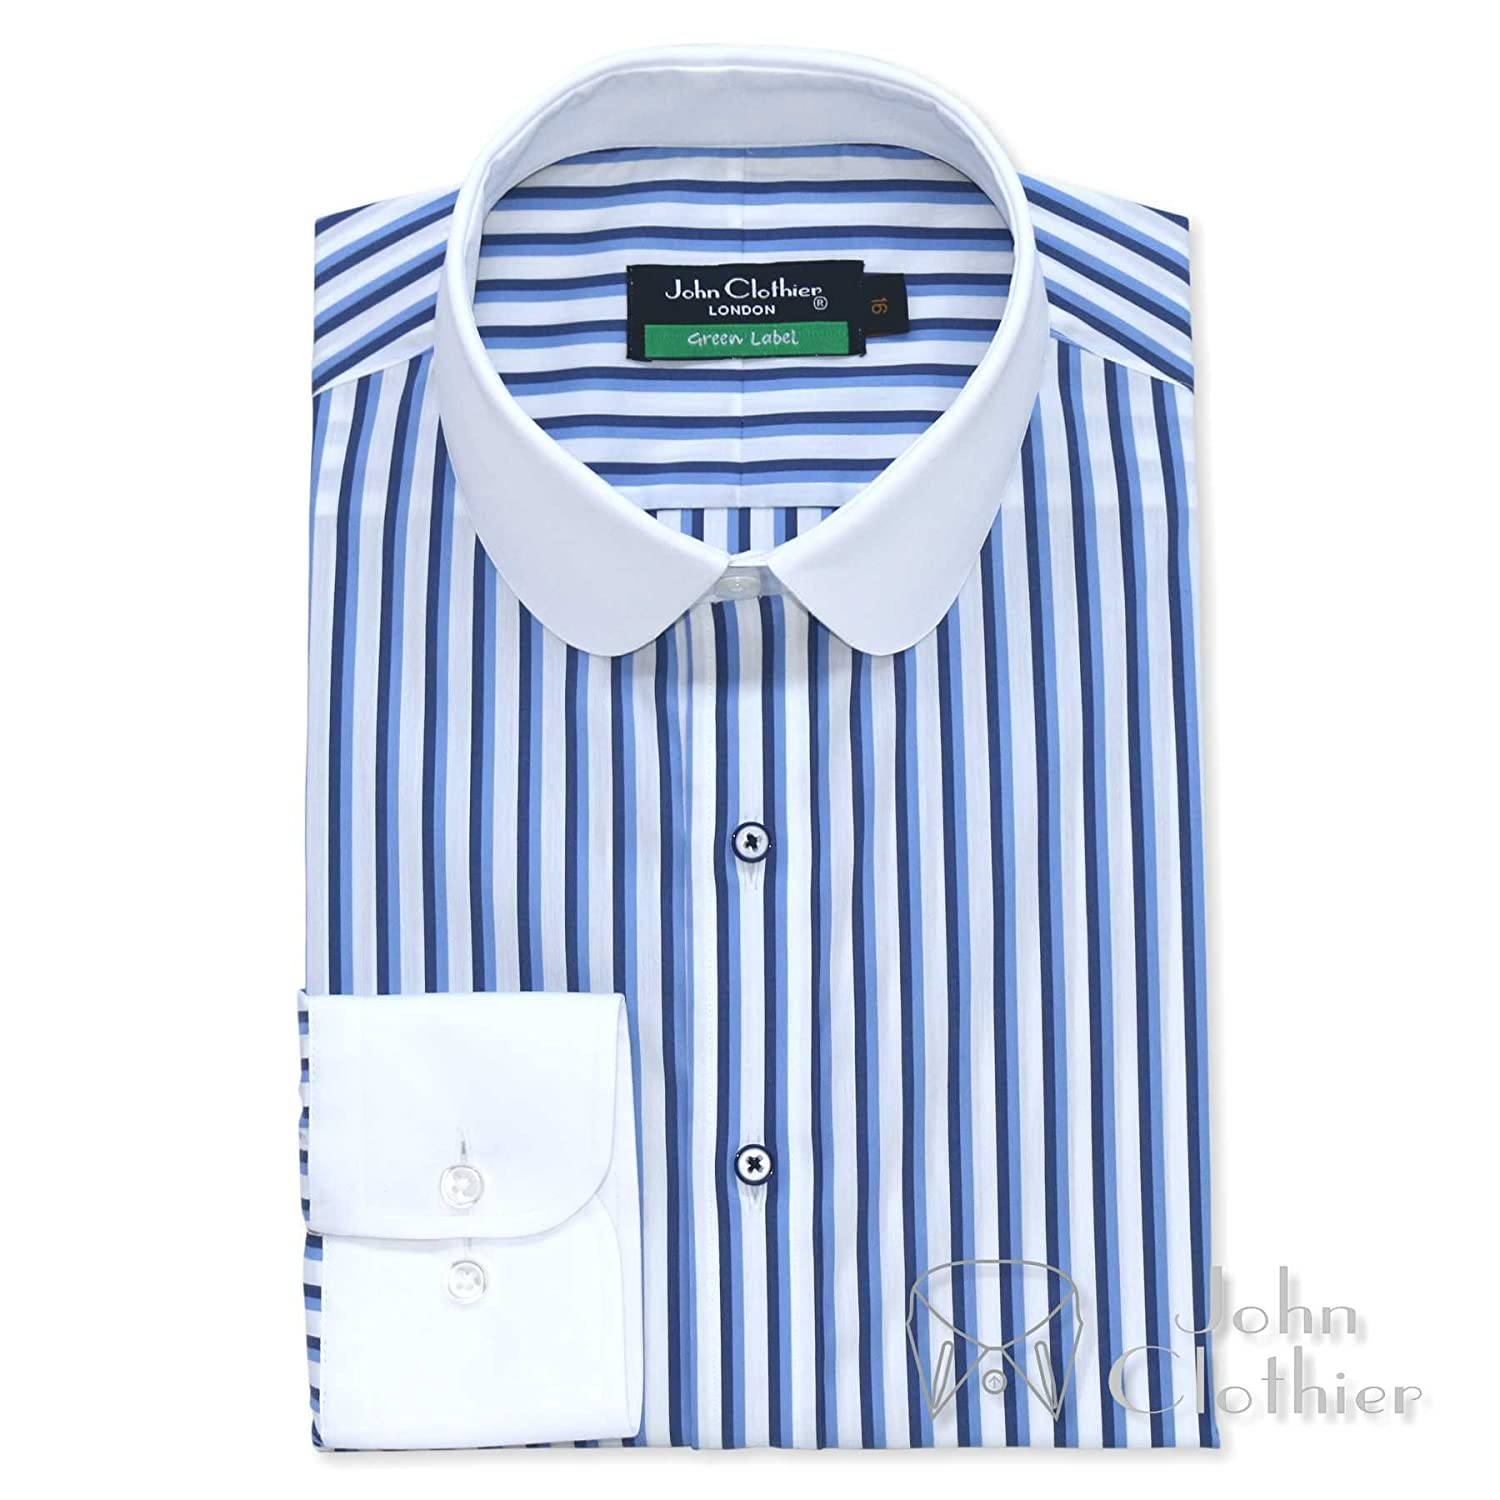 Men's Vintage Style Shirts WhitePilotShirts Mens Penny Collar Bankers Shirt Blue Black Stripes 100% Cotton Round Collar Long Sleeves Single Cuff Gents 500-01 £69.99 AT vintagedancer.com